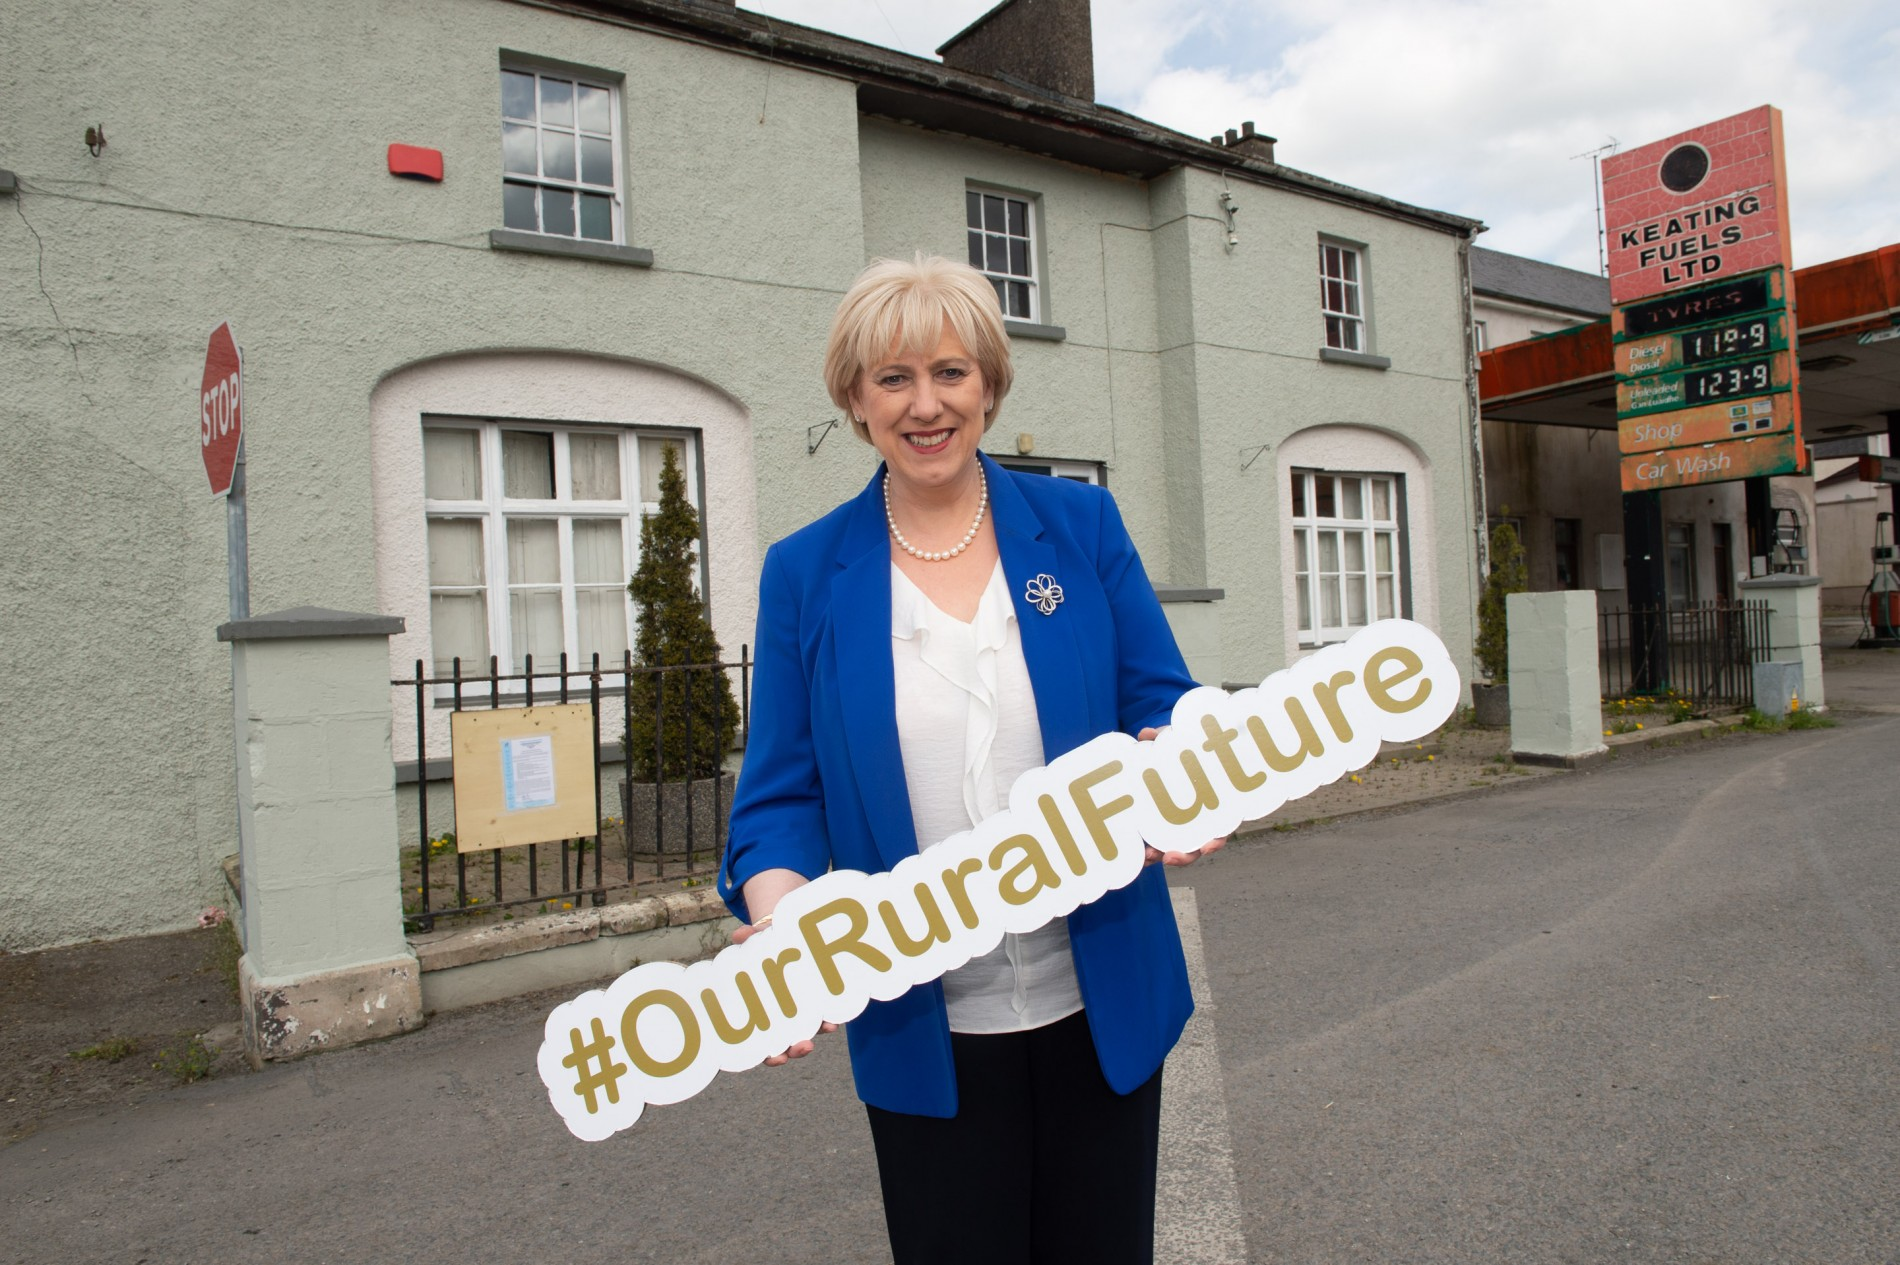 Remote working facilities included in €1bn rural regeneration fund